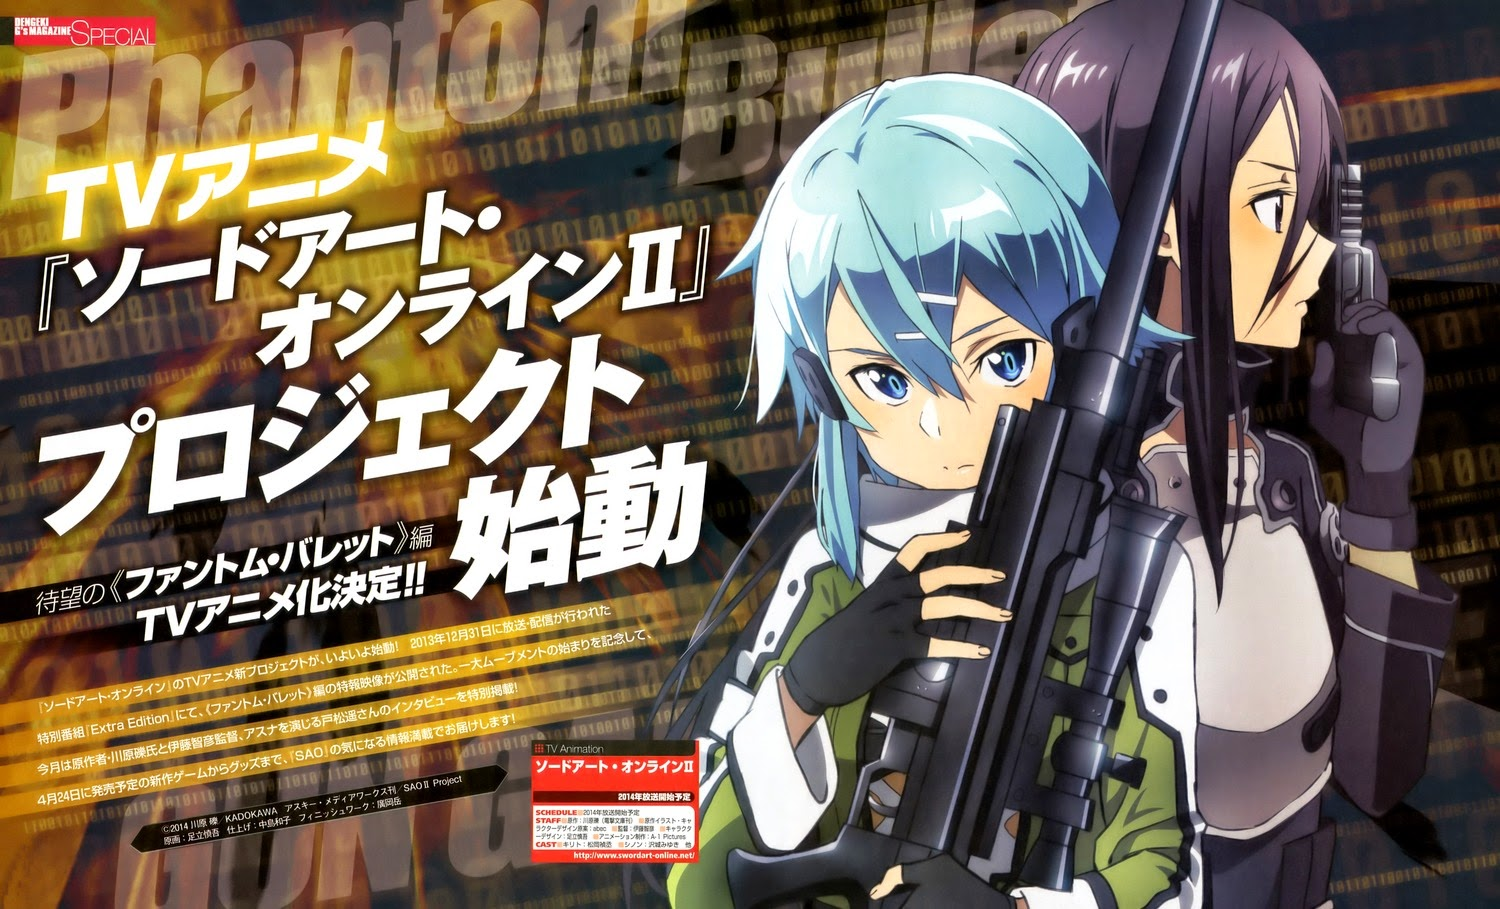 Sword Art Online II Episode 1 Subtitle Indonesia, Sword Art Online Season 2 Episode 1 Subtitle Indonesia